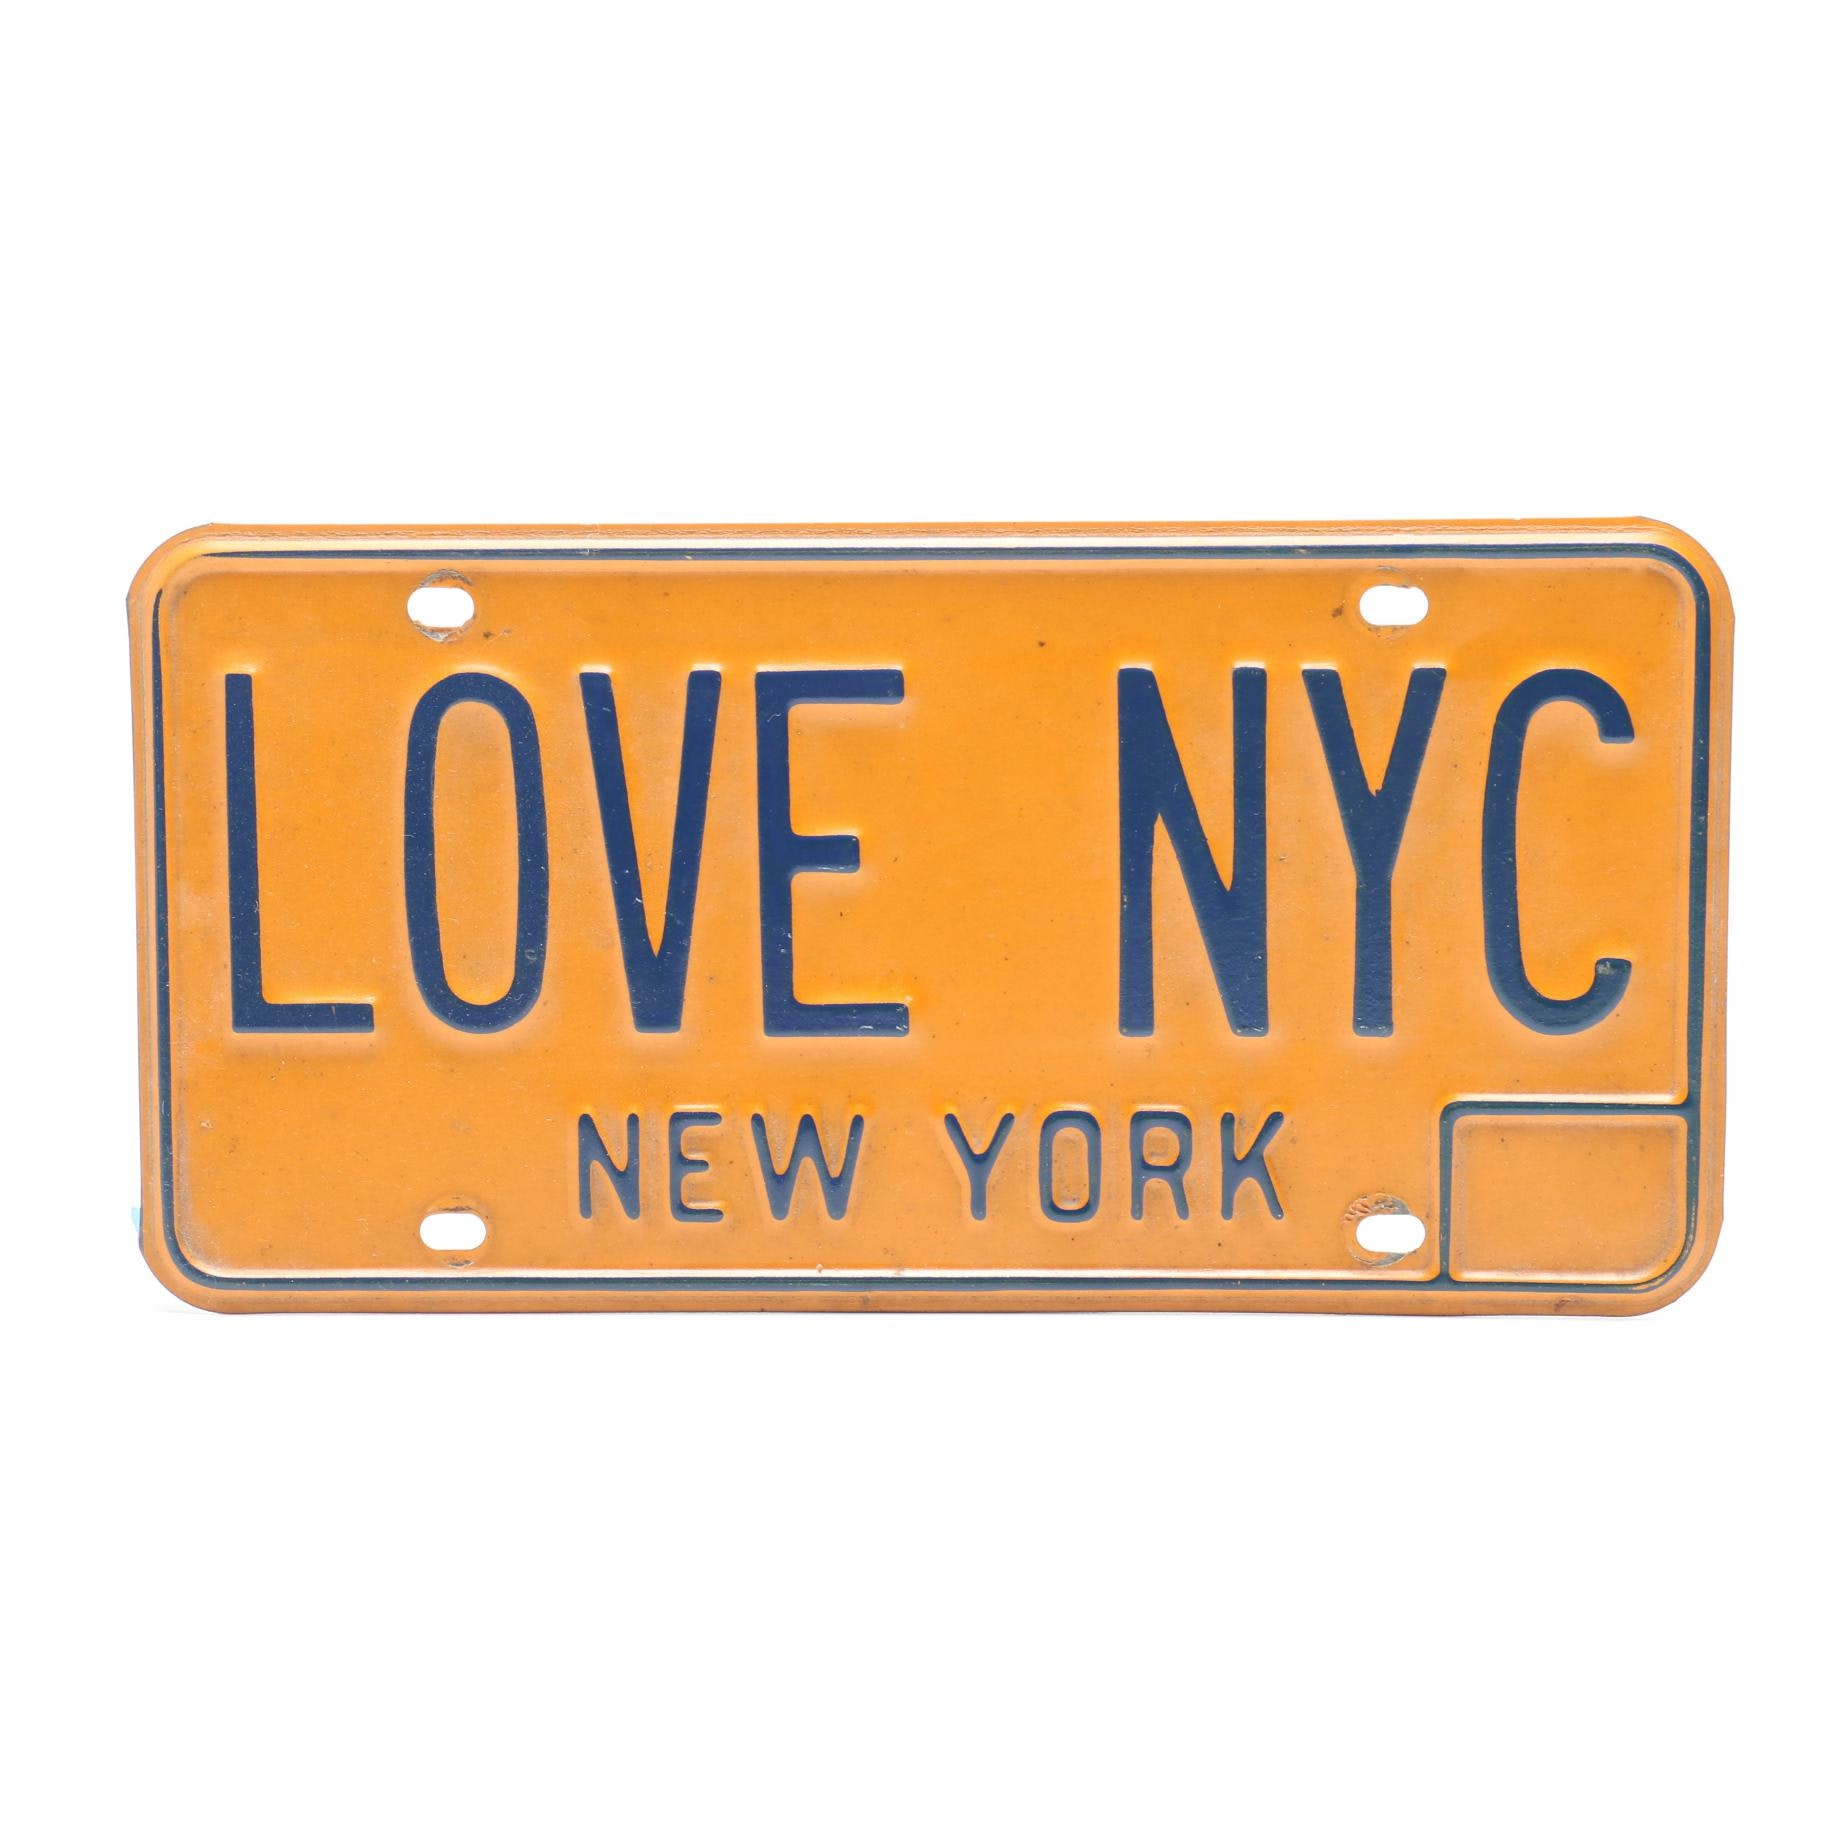 LOVE NYC New York Licence Plate in Orange